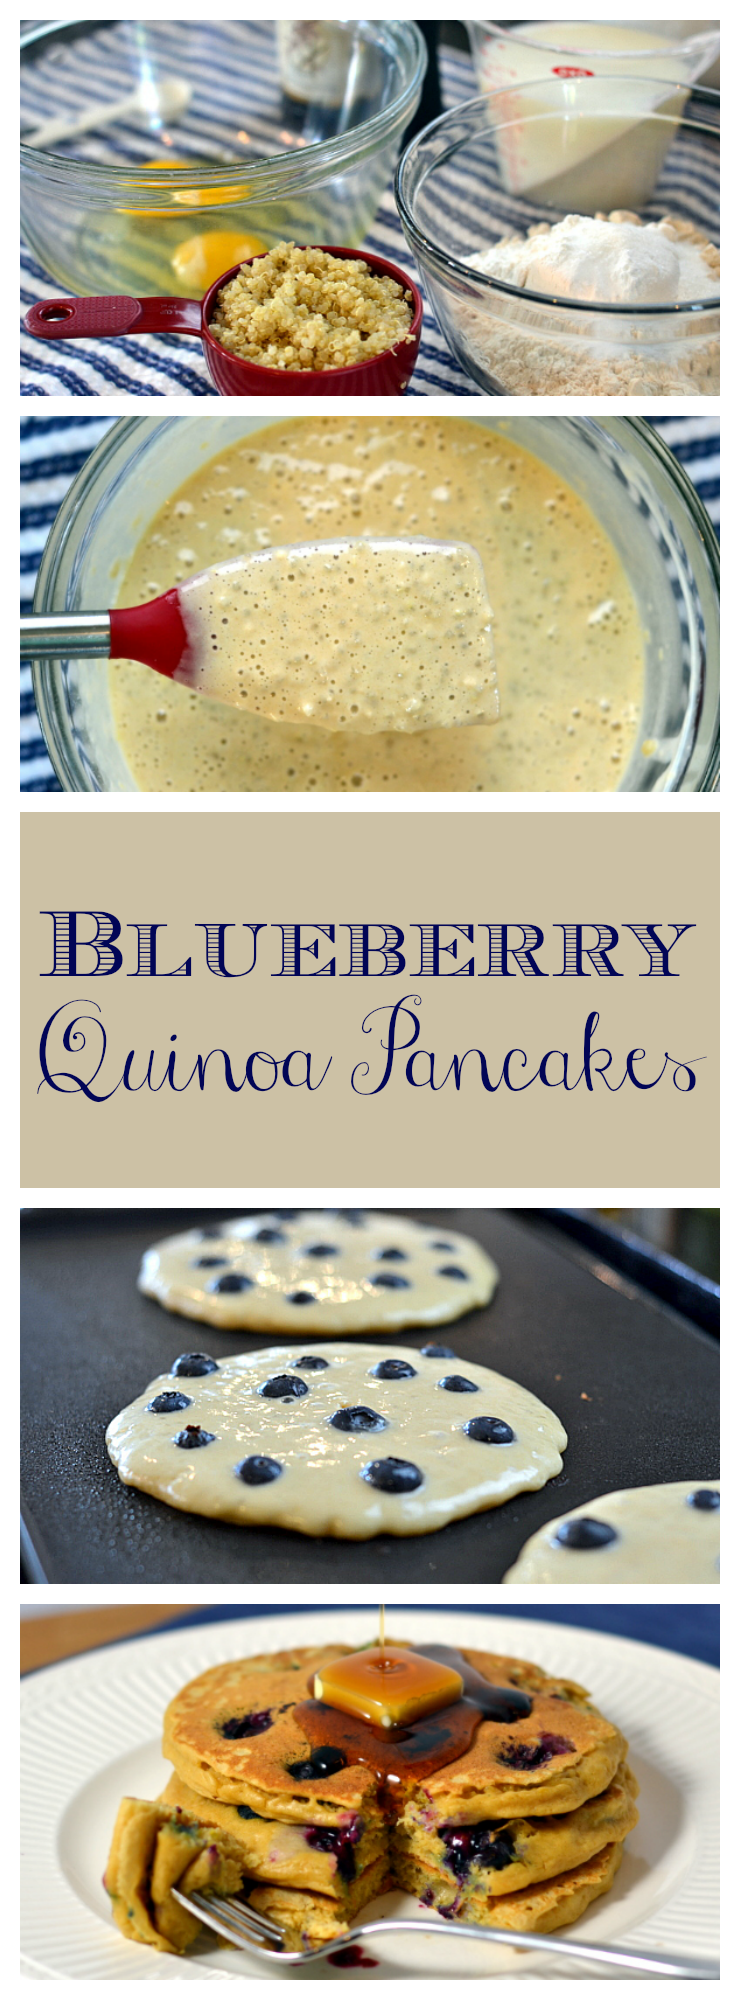 Bump up the protein in your breakfast with these kid-approved Blueberry Quinoa Pancakes. Recipe at Chew Nibble Nosh